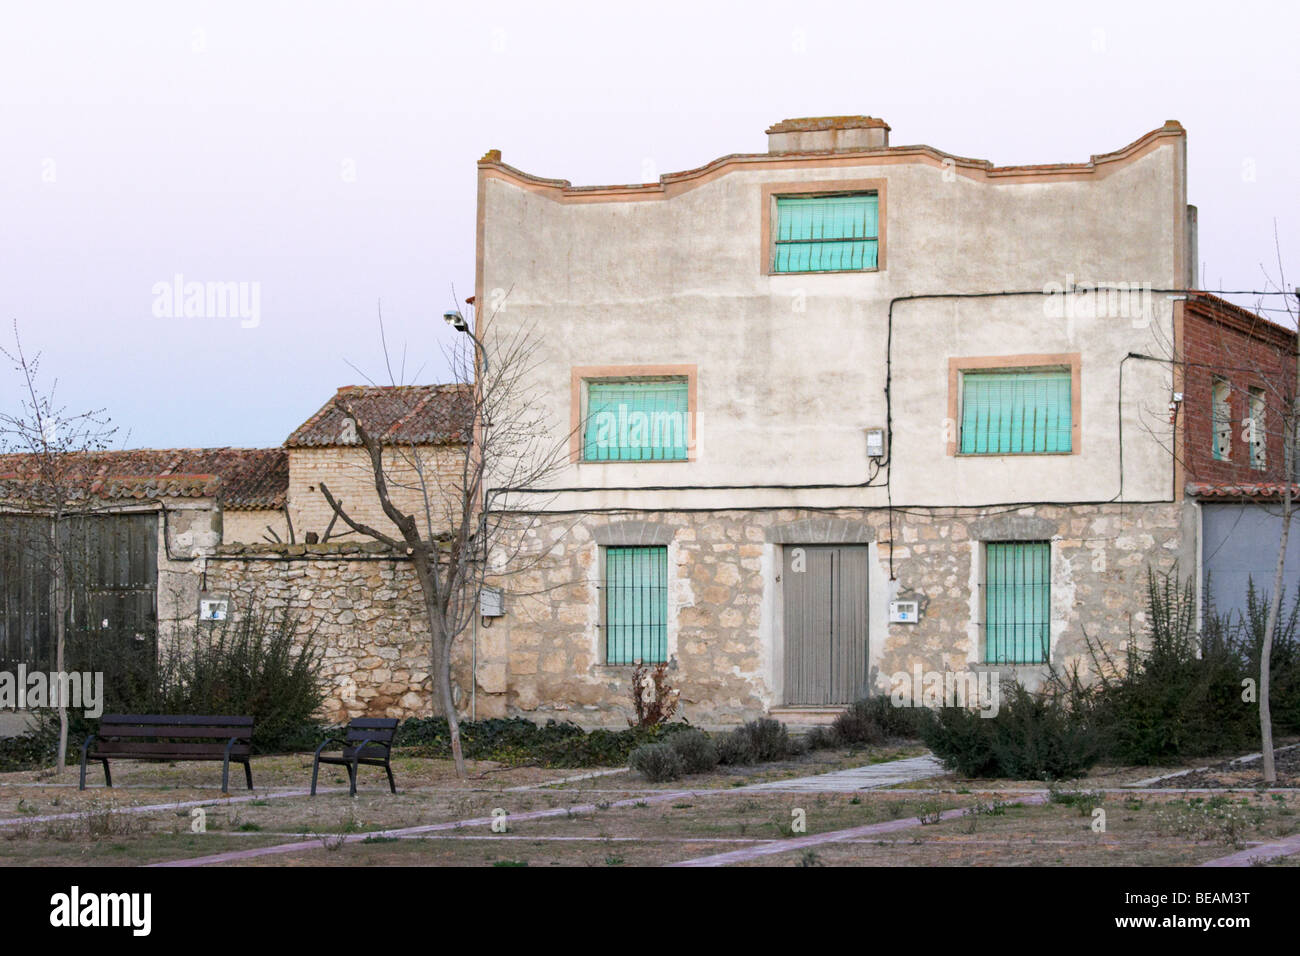 an old house, Valoria la Buena spain castile and leon - Stock Image